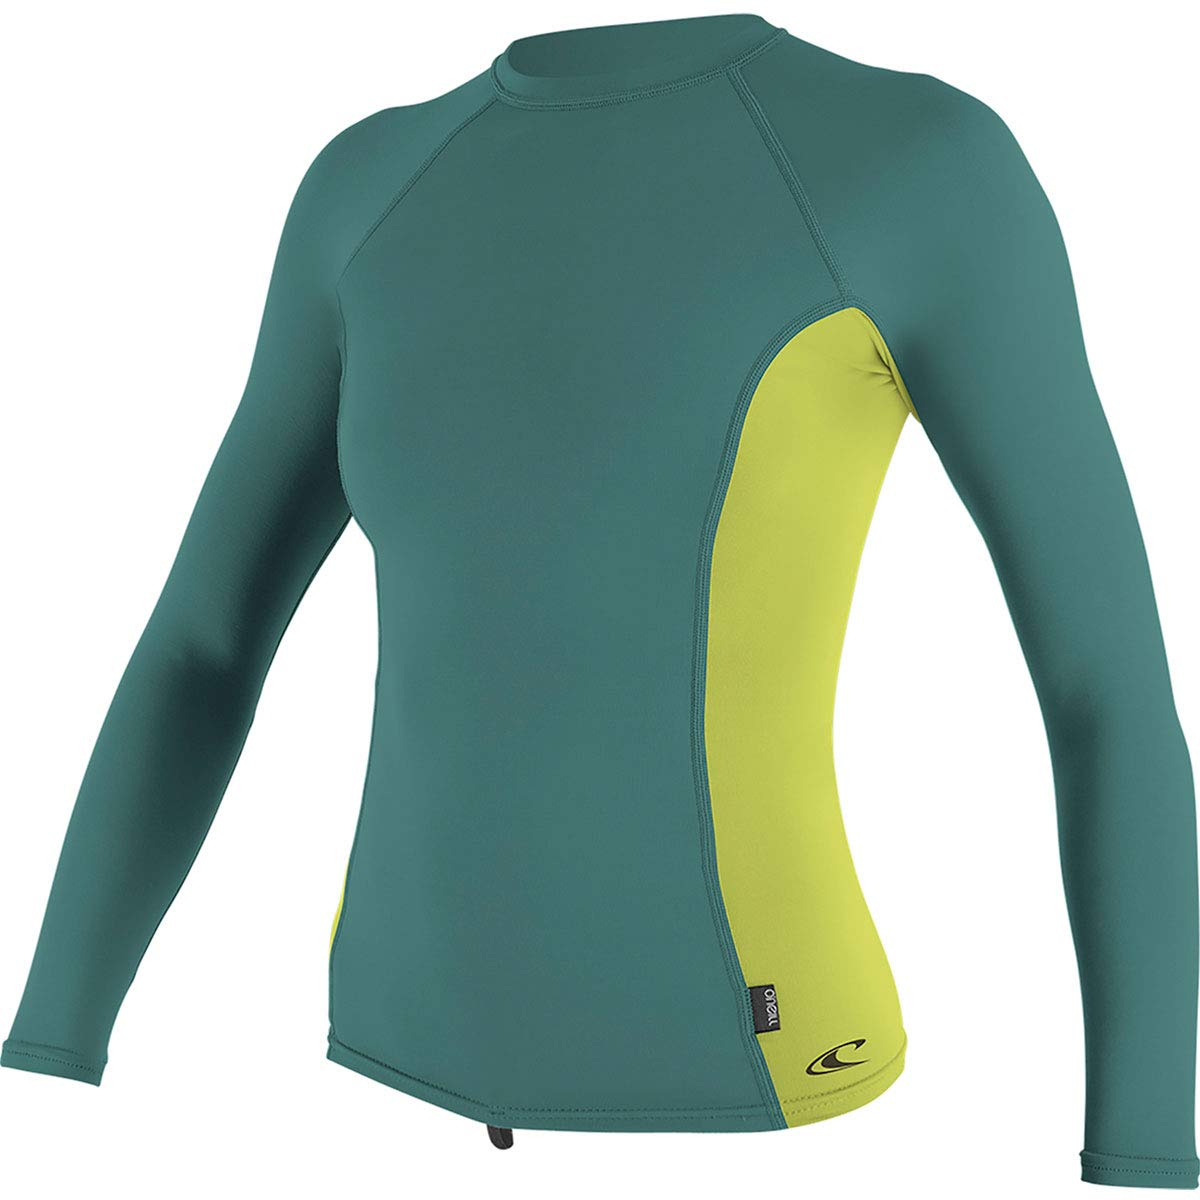 O'Neill Side Print Women's Long-Sleeve Rashguards - Abyss/Faro/Large